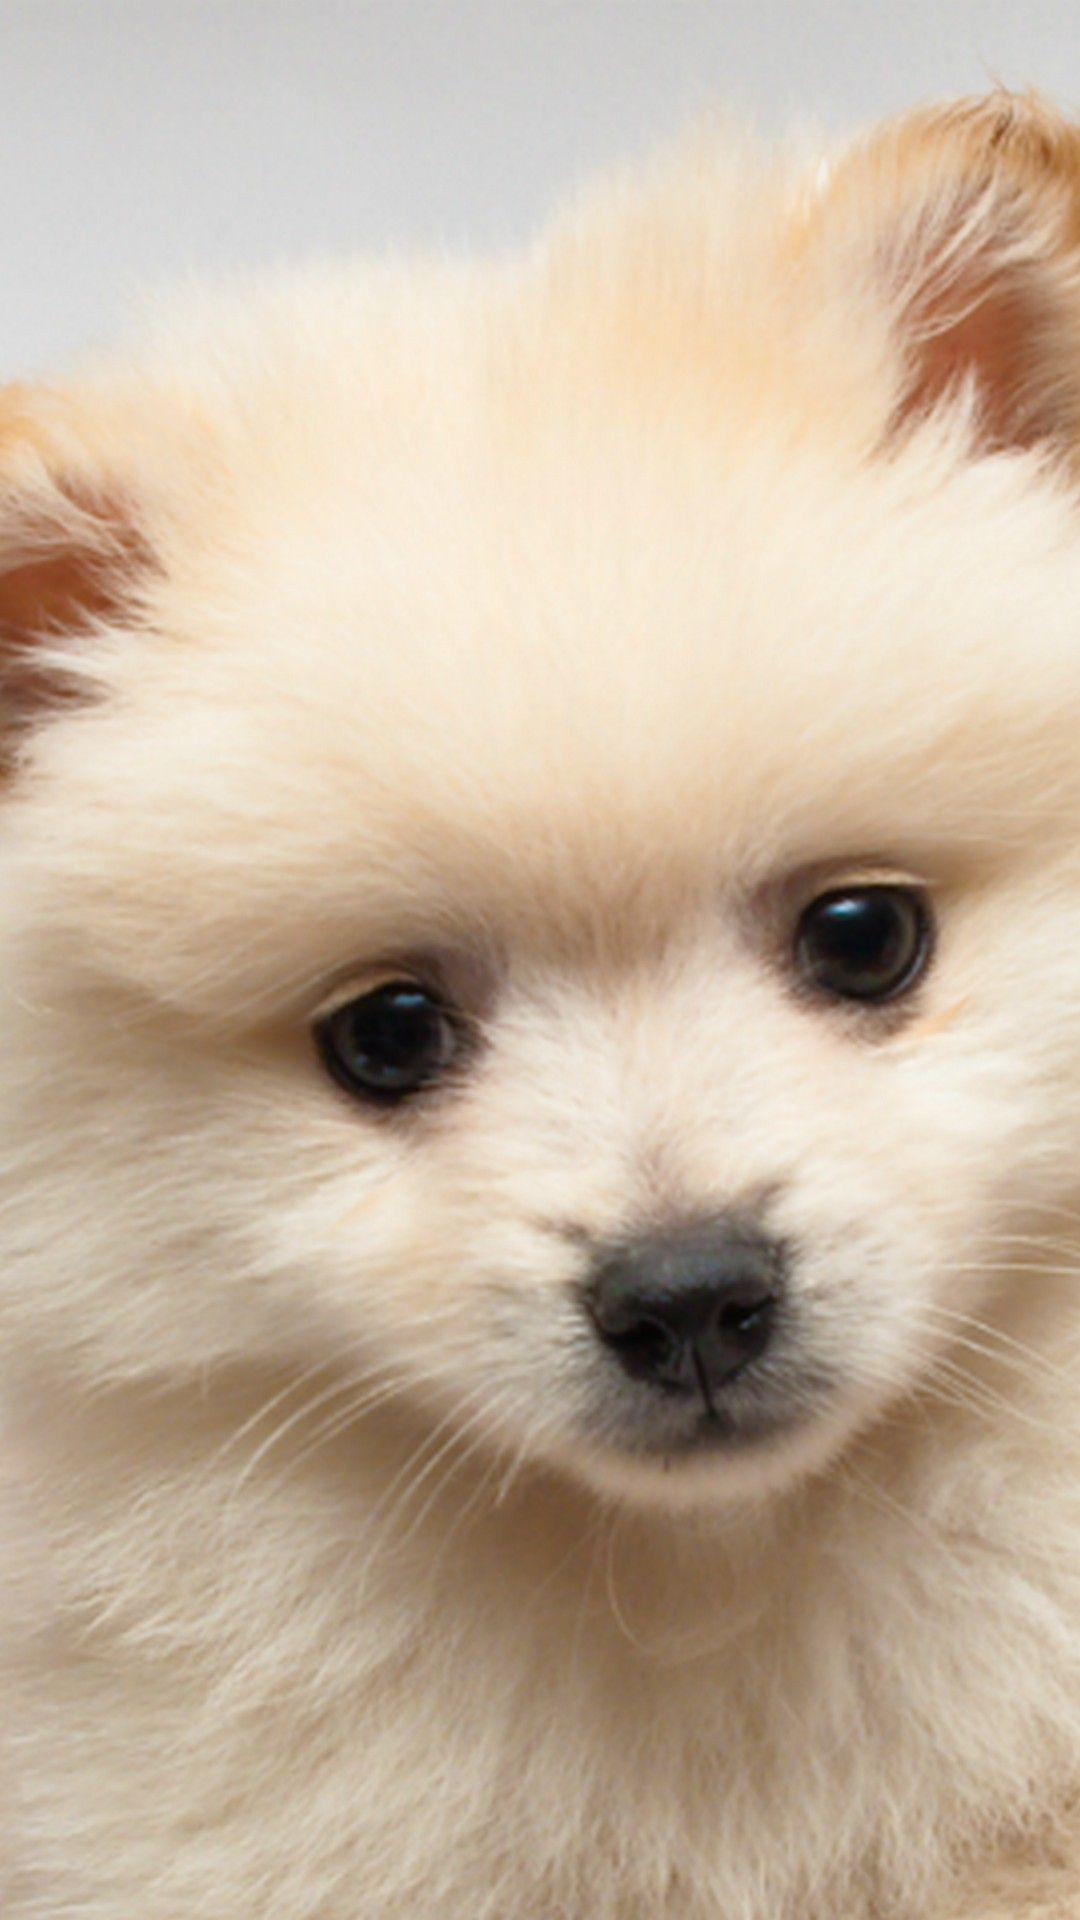 Iphone Wallpaper Cute Puppies Pictures Dog Wallpapers White Teacup Cute Pomeranian 870744 Hd Wallpaper Backgrounds Download